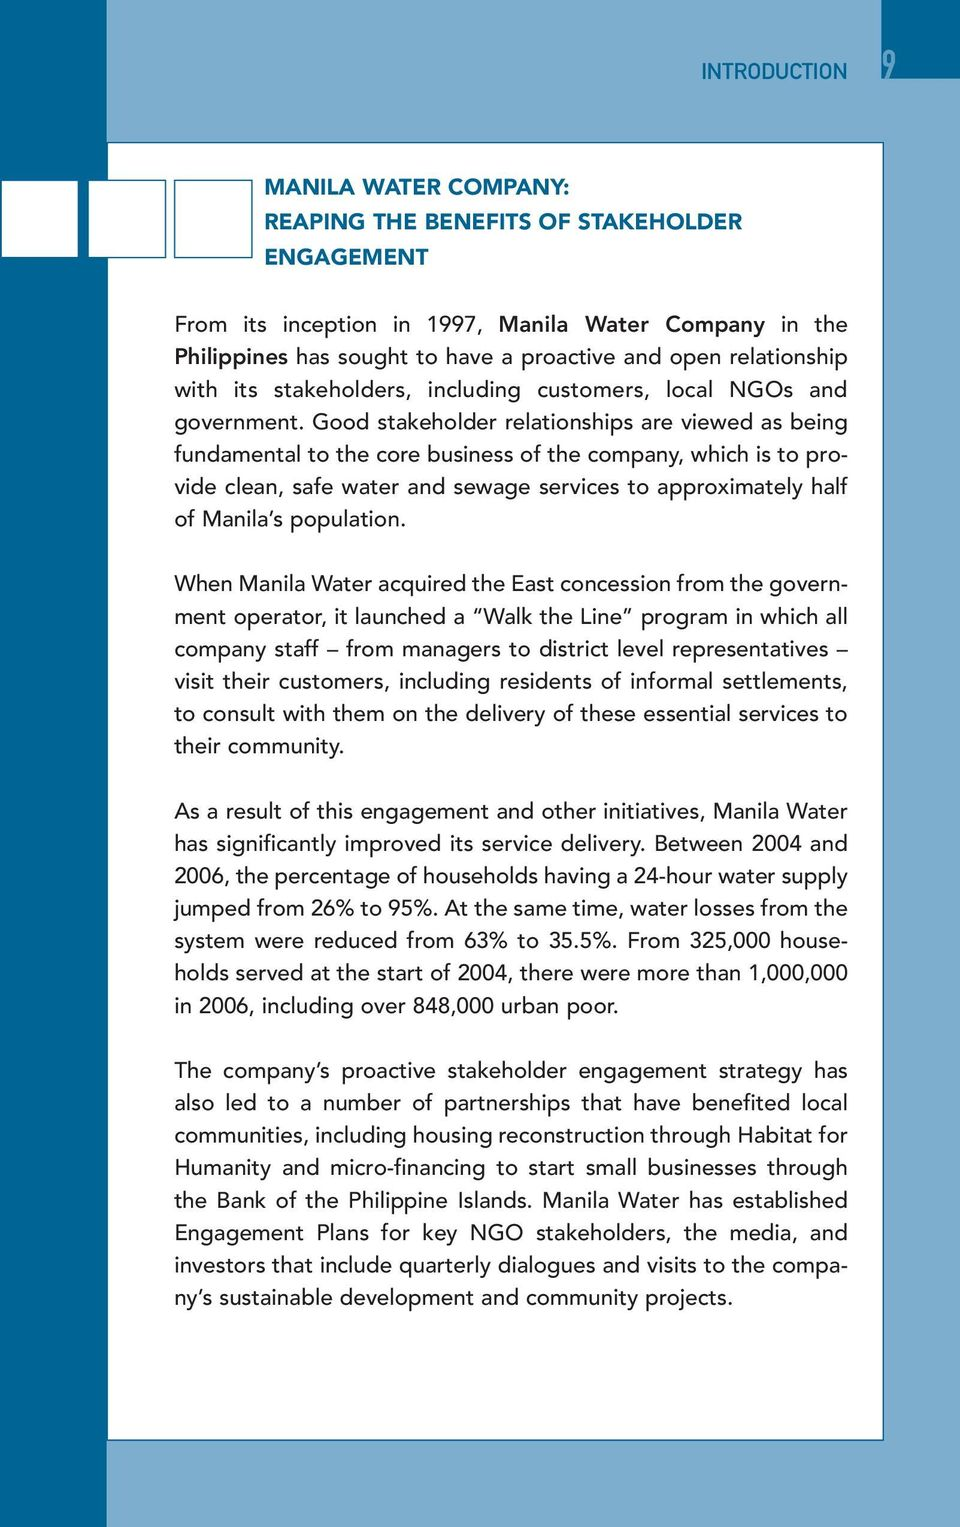 Good stakeholder relationships are viewed as being fundamental to the core business of the company, which is to provide clean, safe water and sewage services to approximately half of Manila s